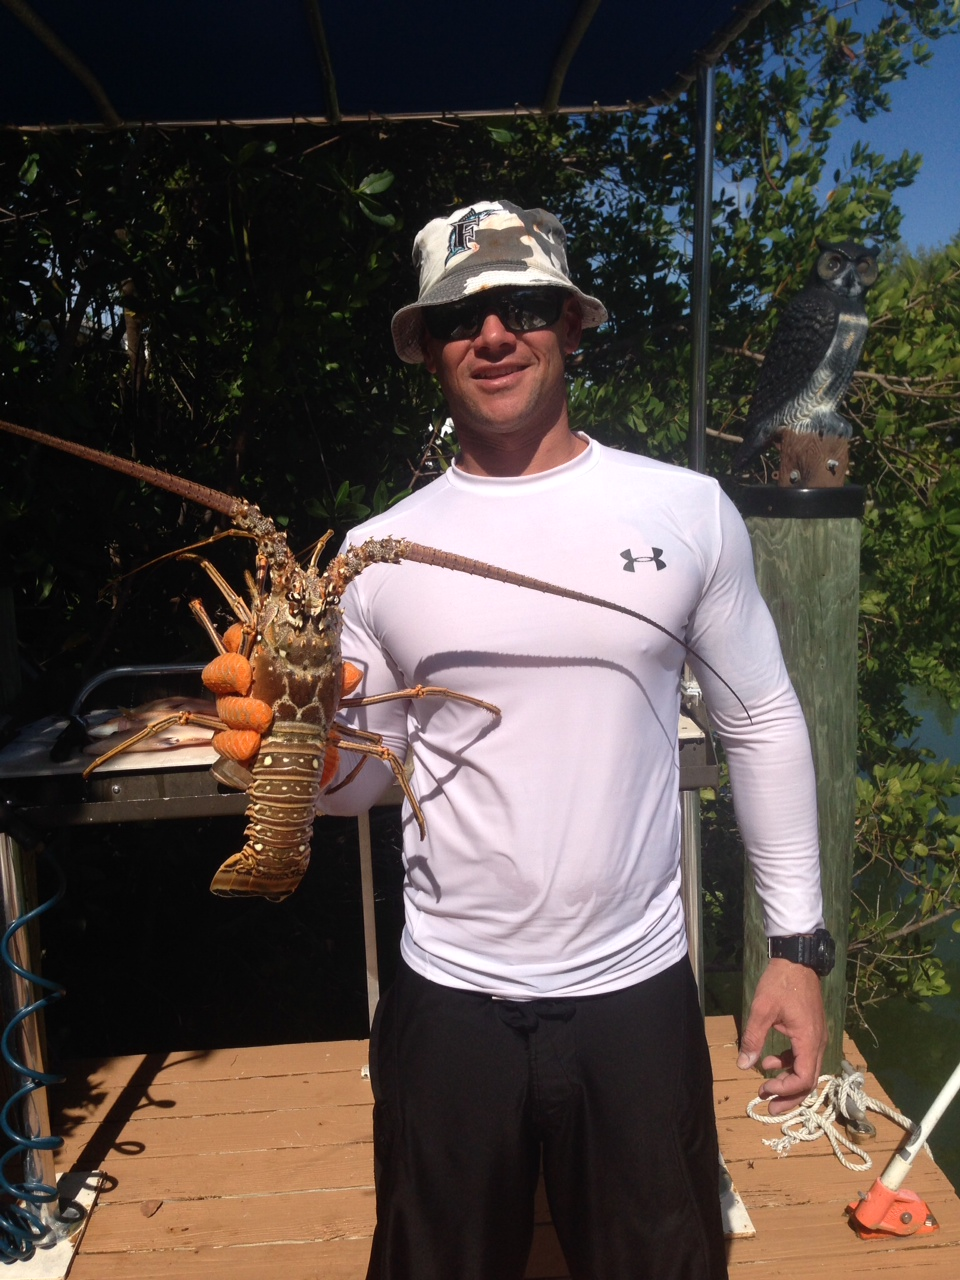 Spearfishing charter off Marathon produces lobster nice lobster. The Fl Keys offer many different opportunites on the water.